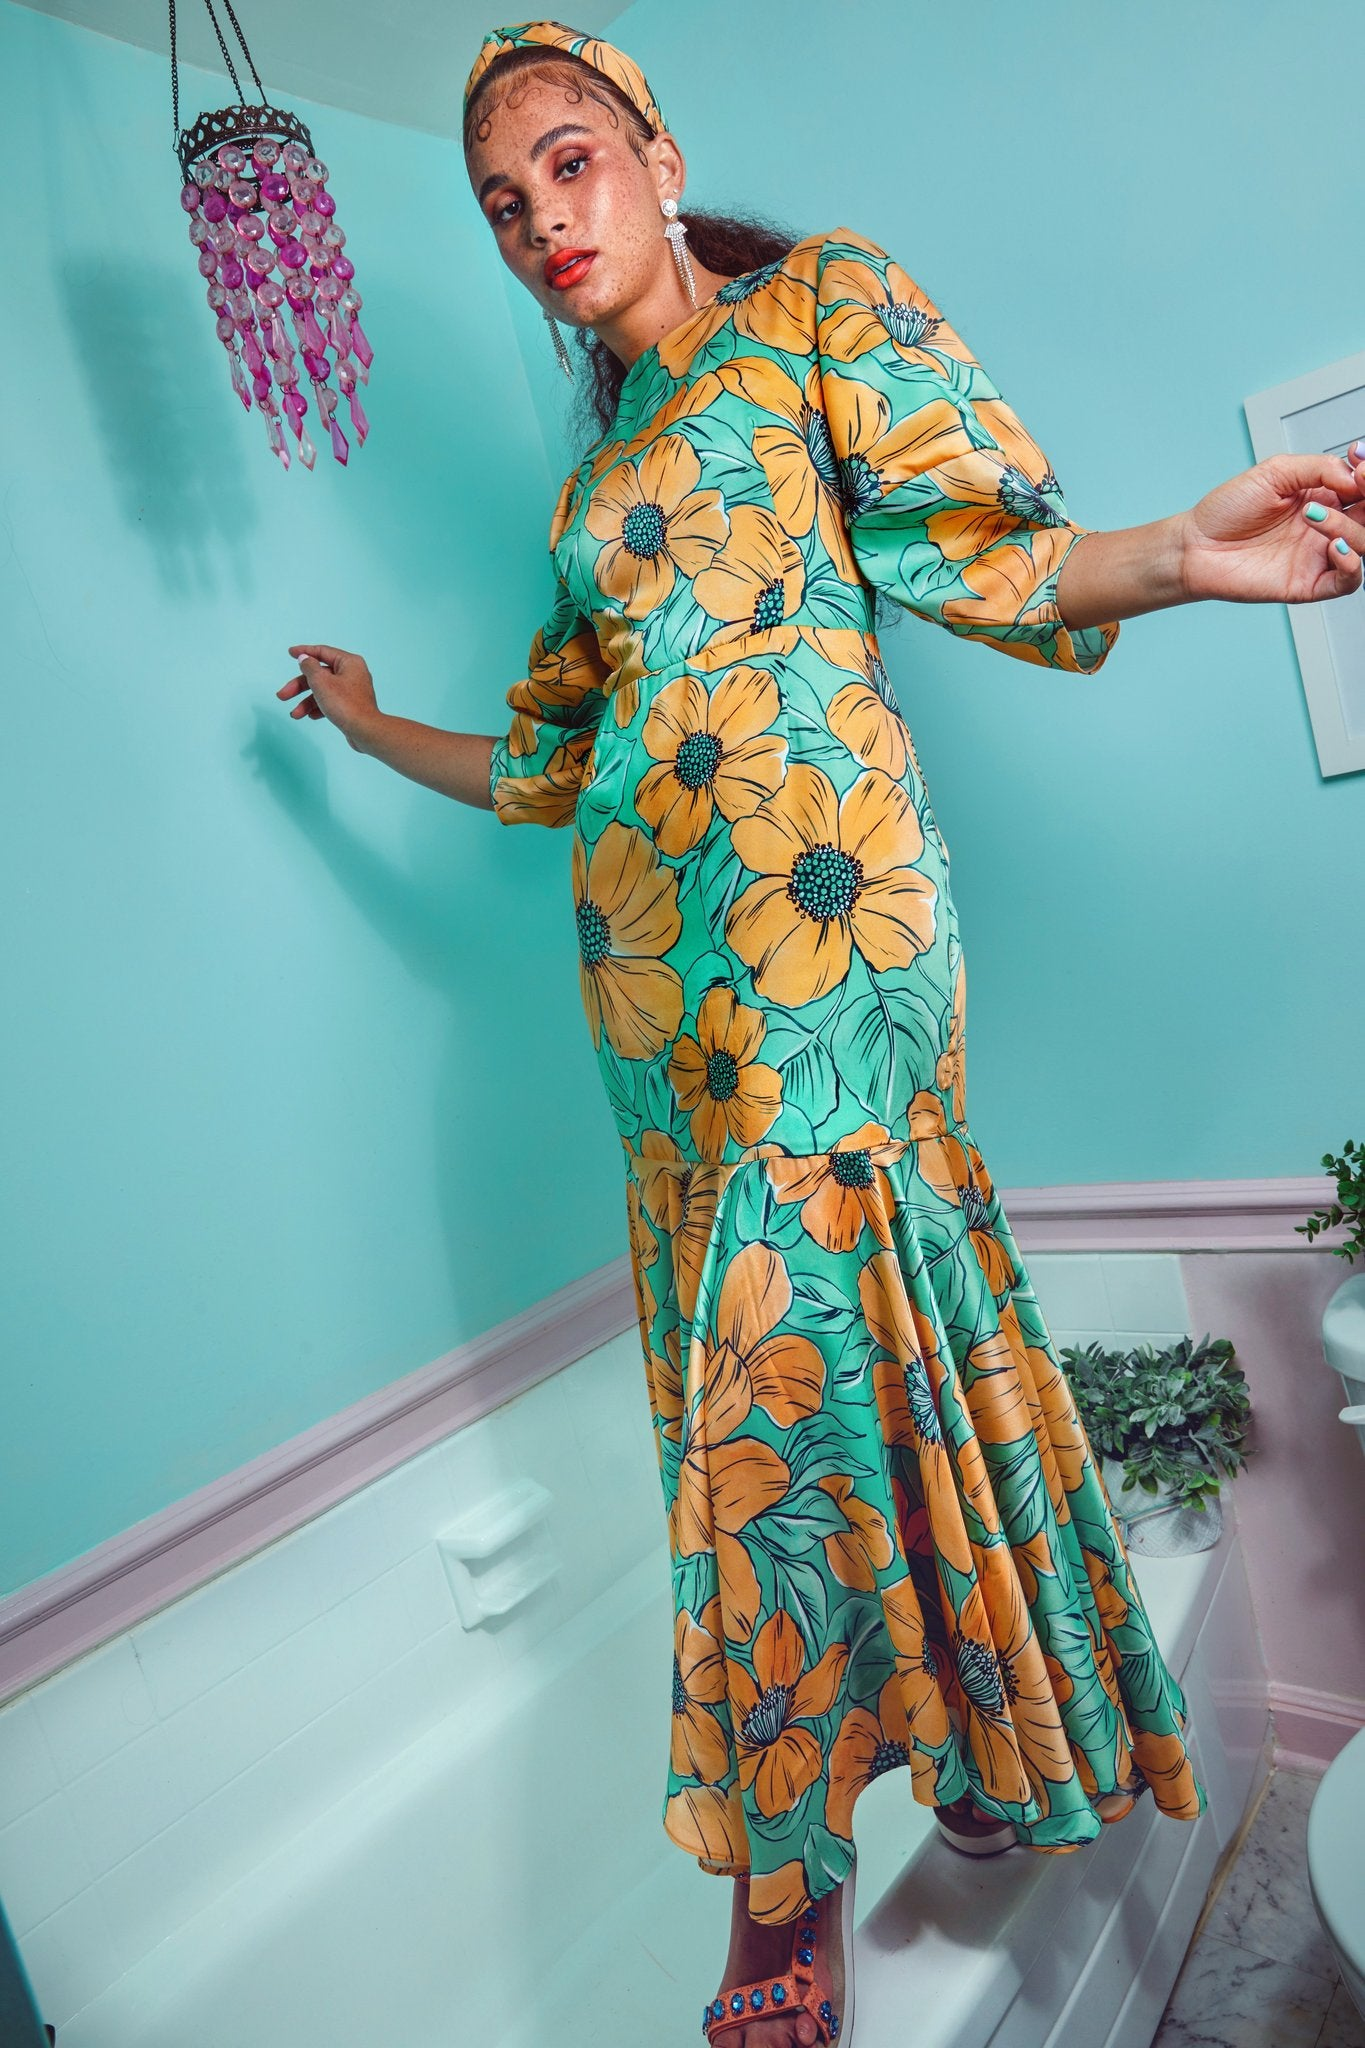 model in teal and orange dress with bold flowers and voluminous three quarter sleeves